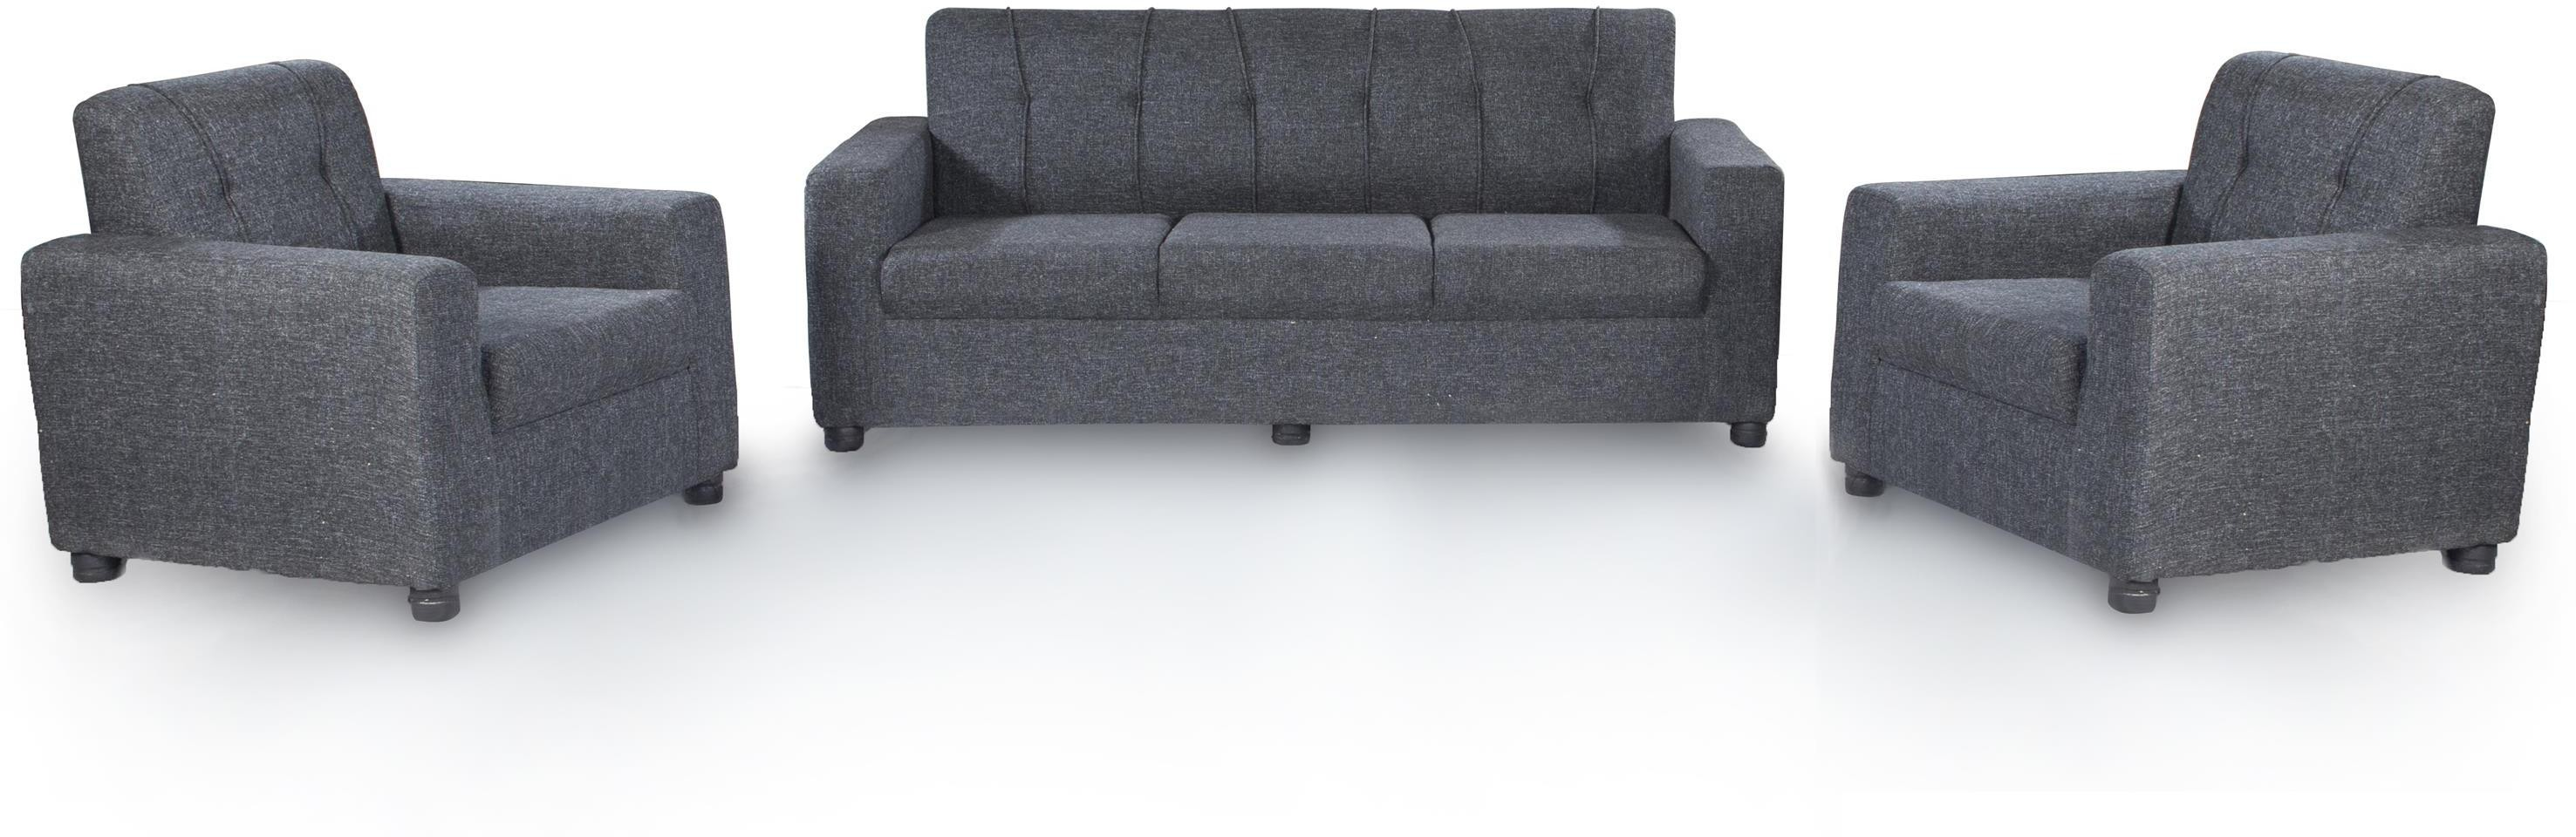 View Furnicity Fabric 3 + 1 + 1 Grey Sofa Set(Configuration - Straight) Furniture (Furnicity)